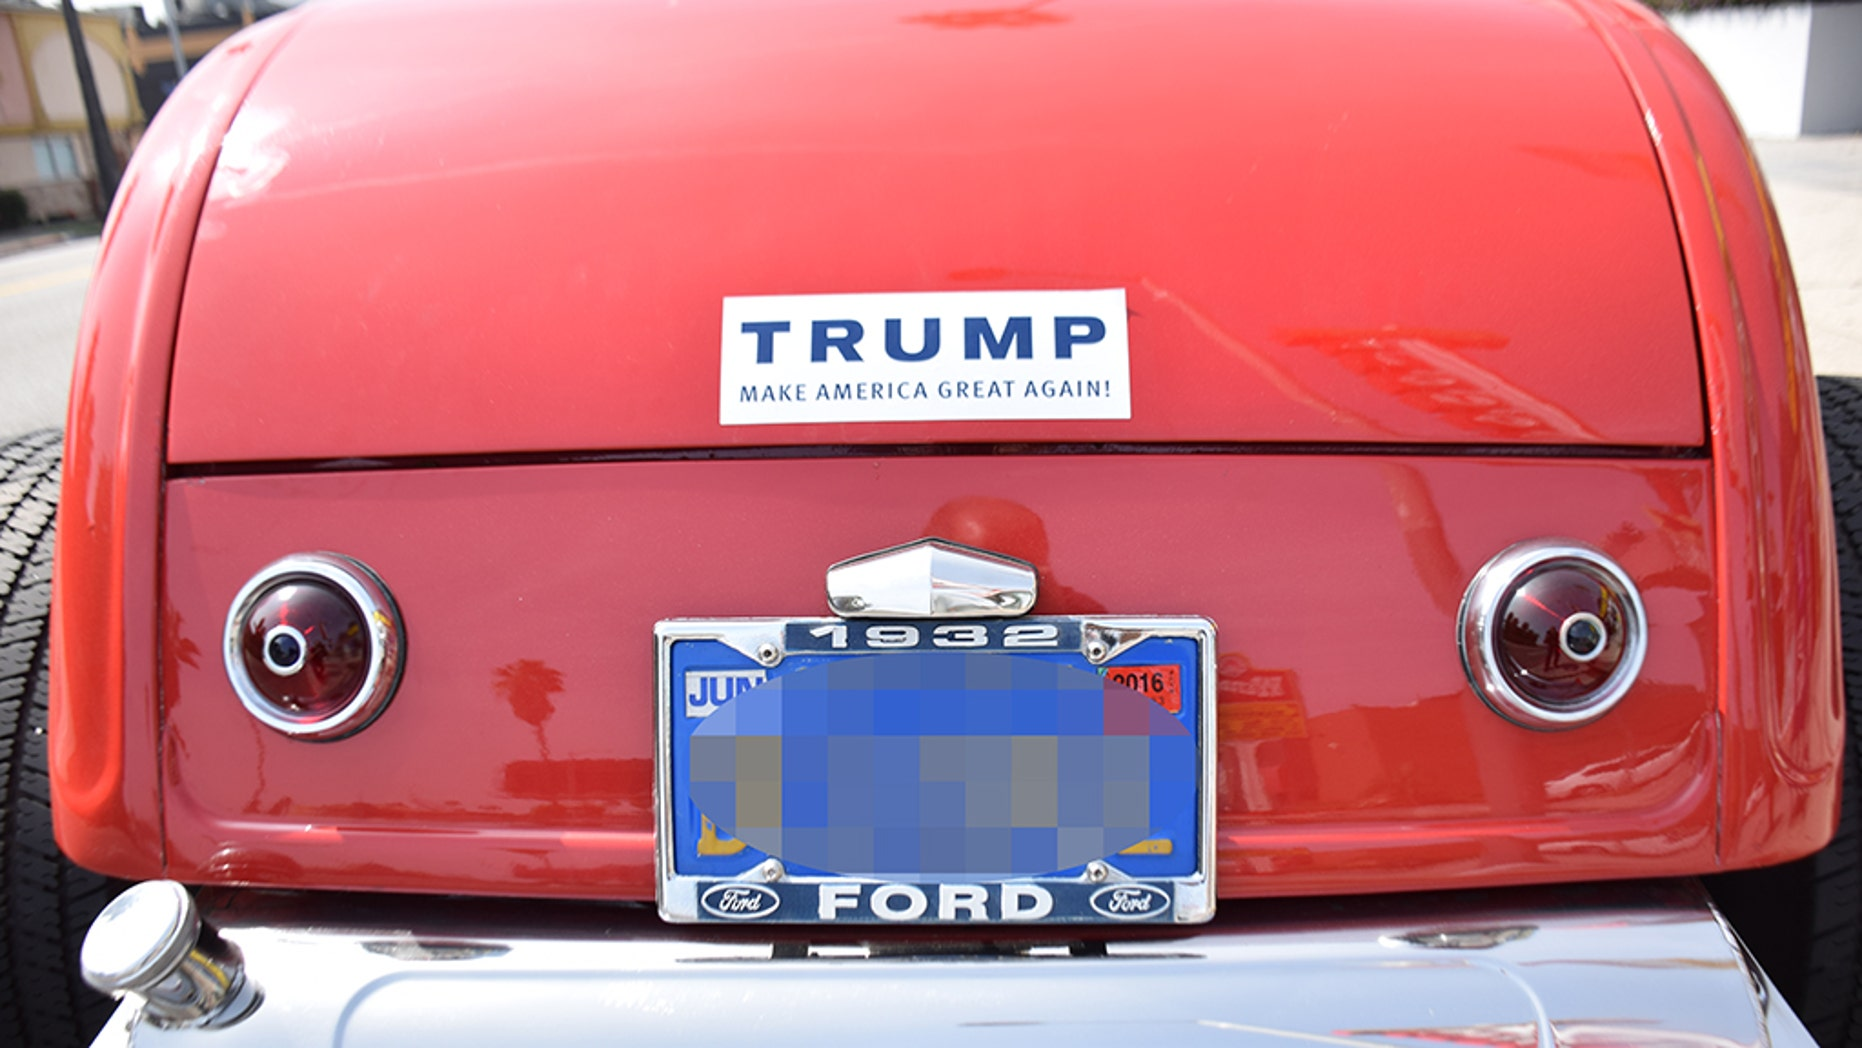 A Massachusetts woman was reportedly taken into custody on Monday after she allegedly drove into a car sporting a Trump bumper sticker.